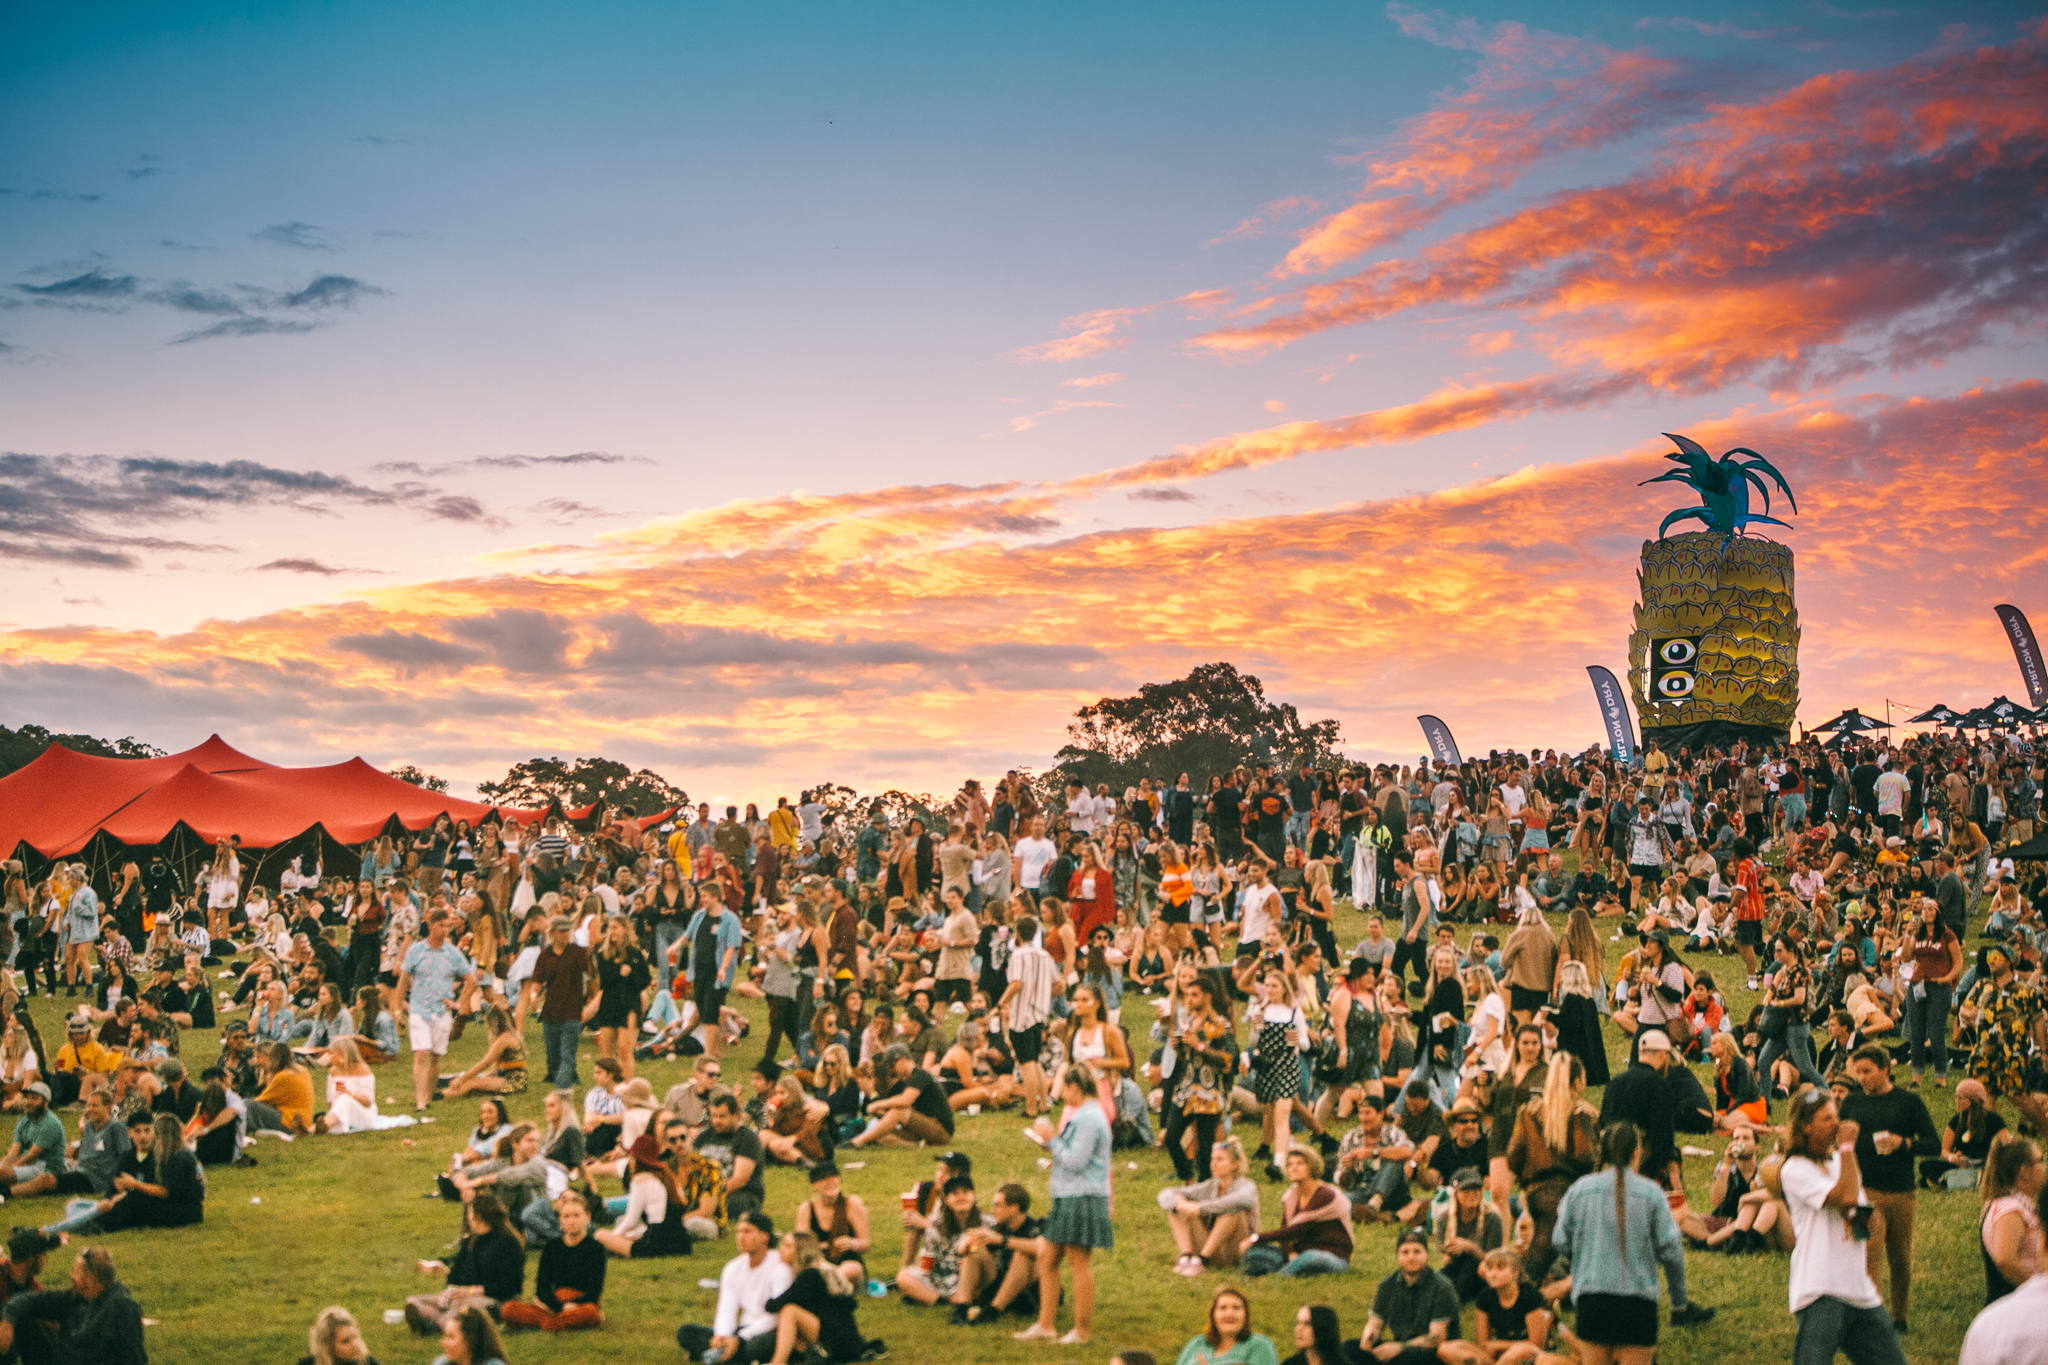 Big Pineapple Music Festival Confirms Line-up For Rescheduled 2020 Event